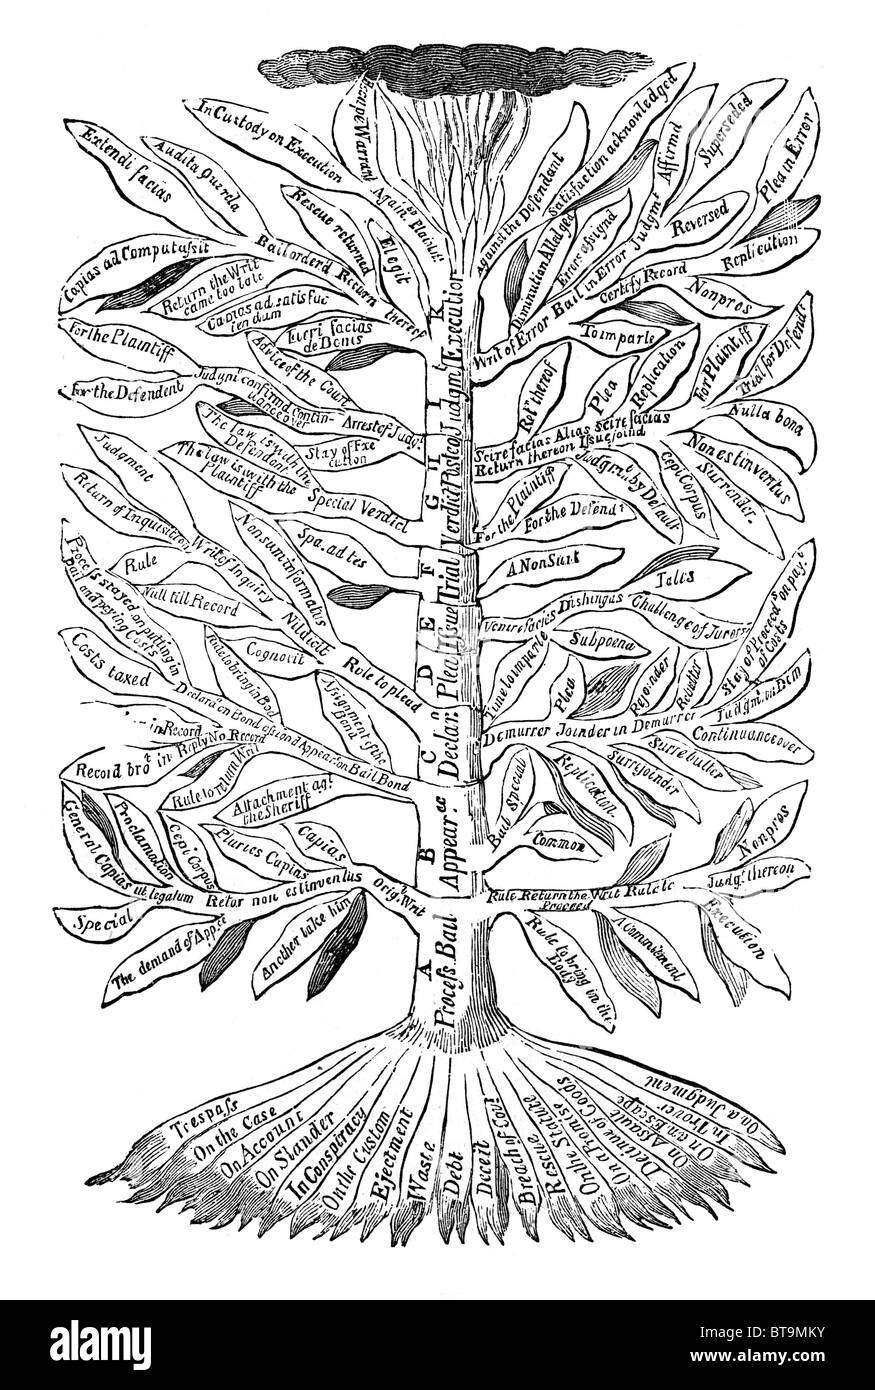 The Tree of Common Law; Black and White Illustration from William Hone's Everyday Book Stock Photo